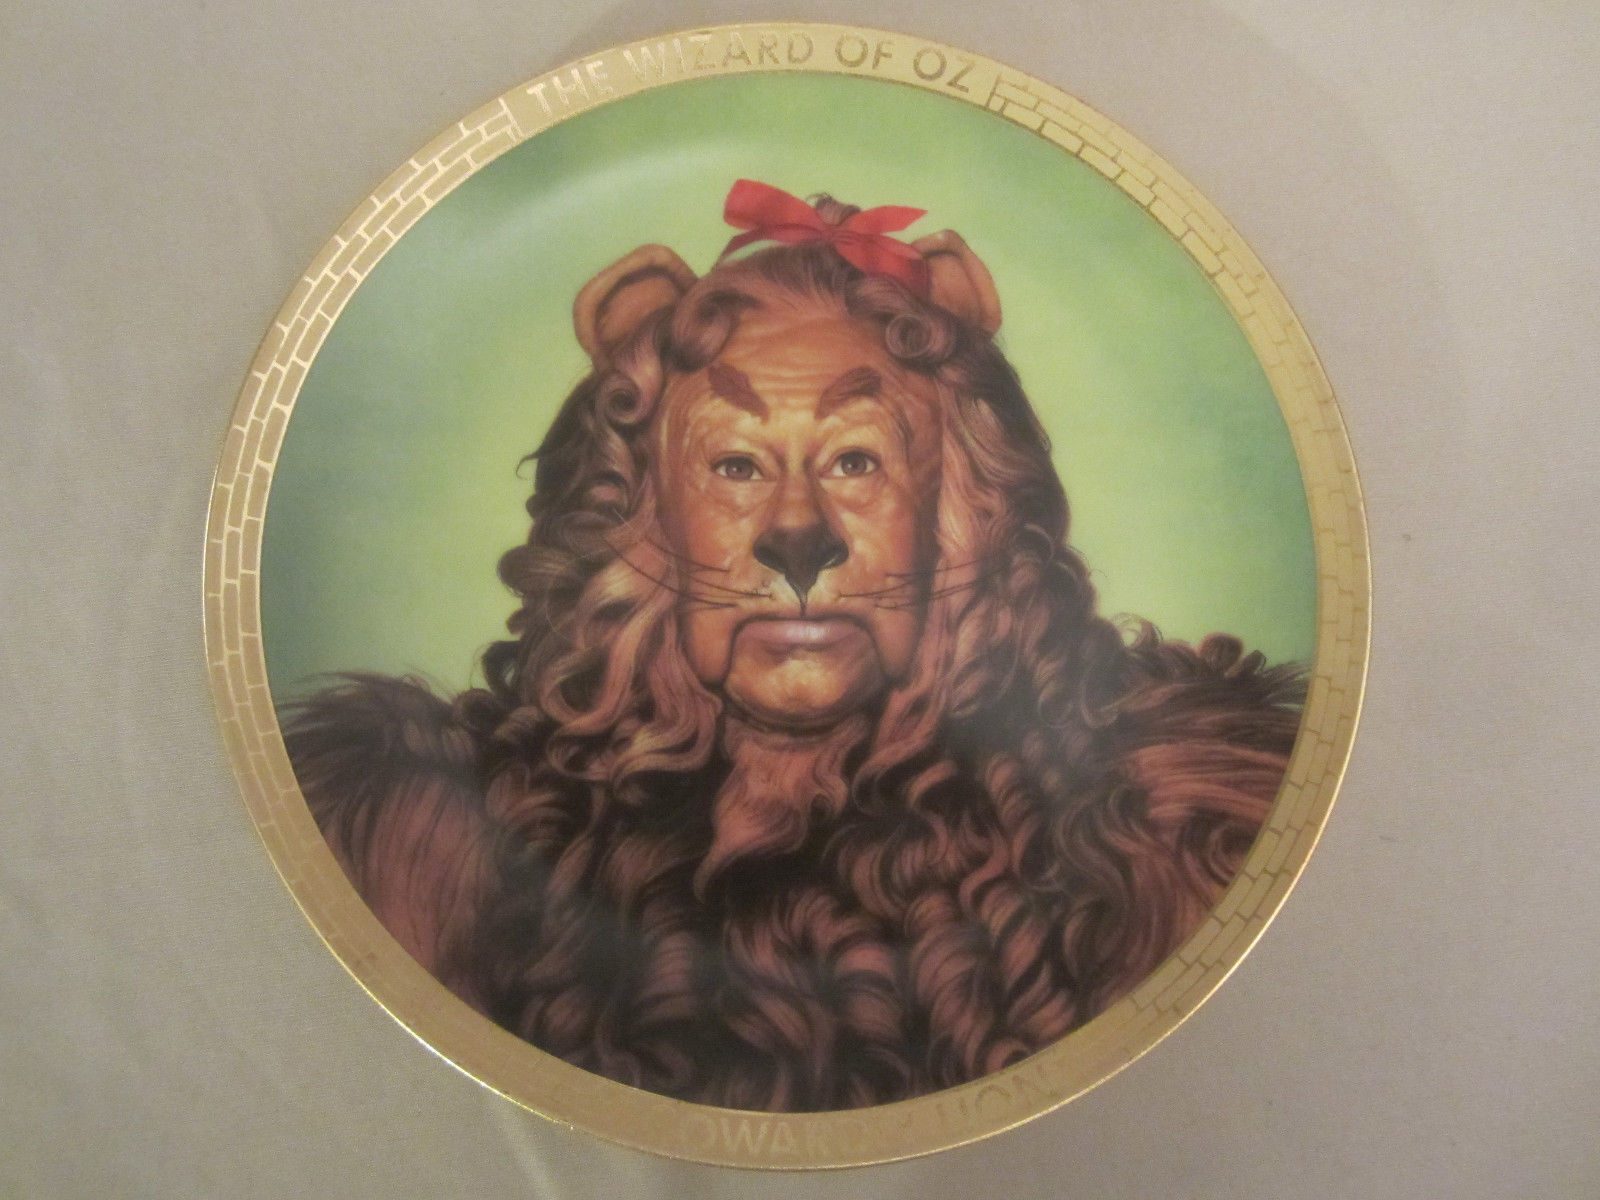 COWARDLY LION collector plate WIZARD OF OZ PORTRAITS Thomas Blackshear